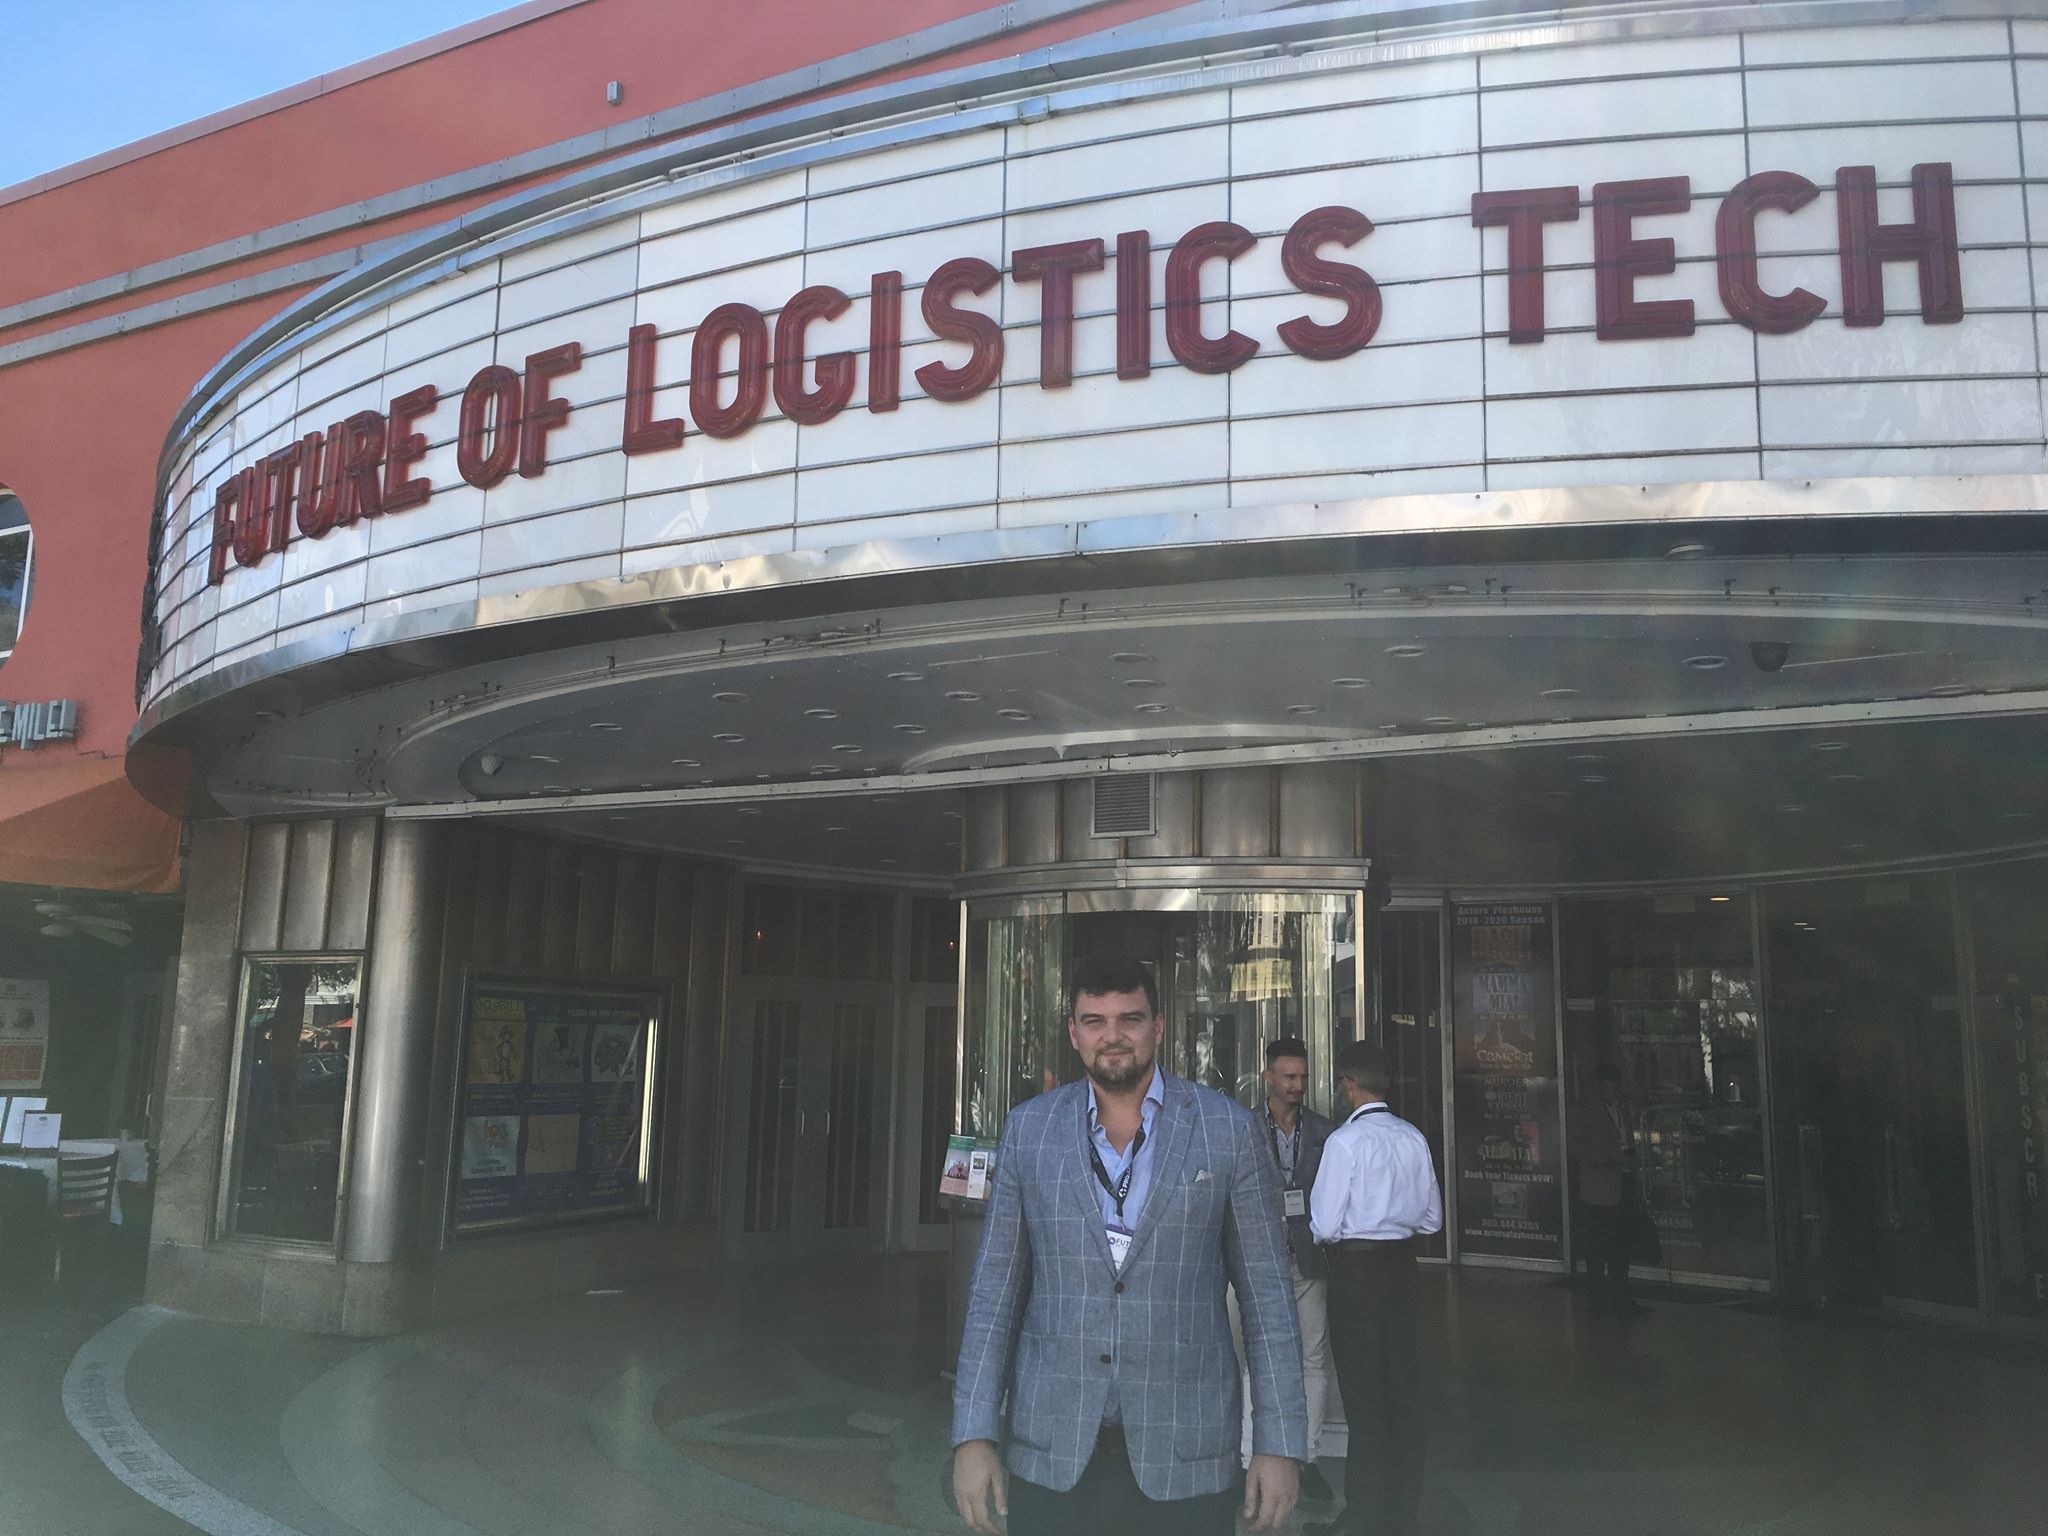 Aeriu was participating in Future of Logistics Tech Summit